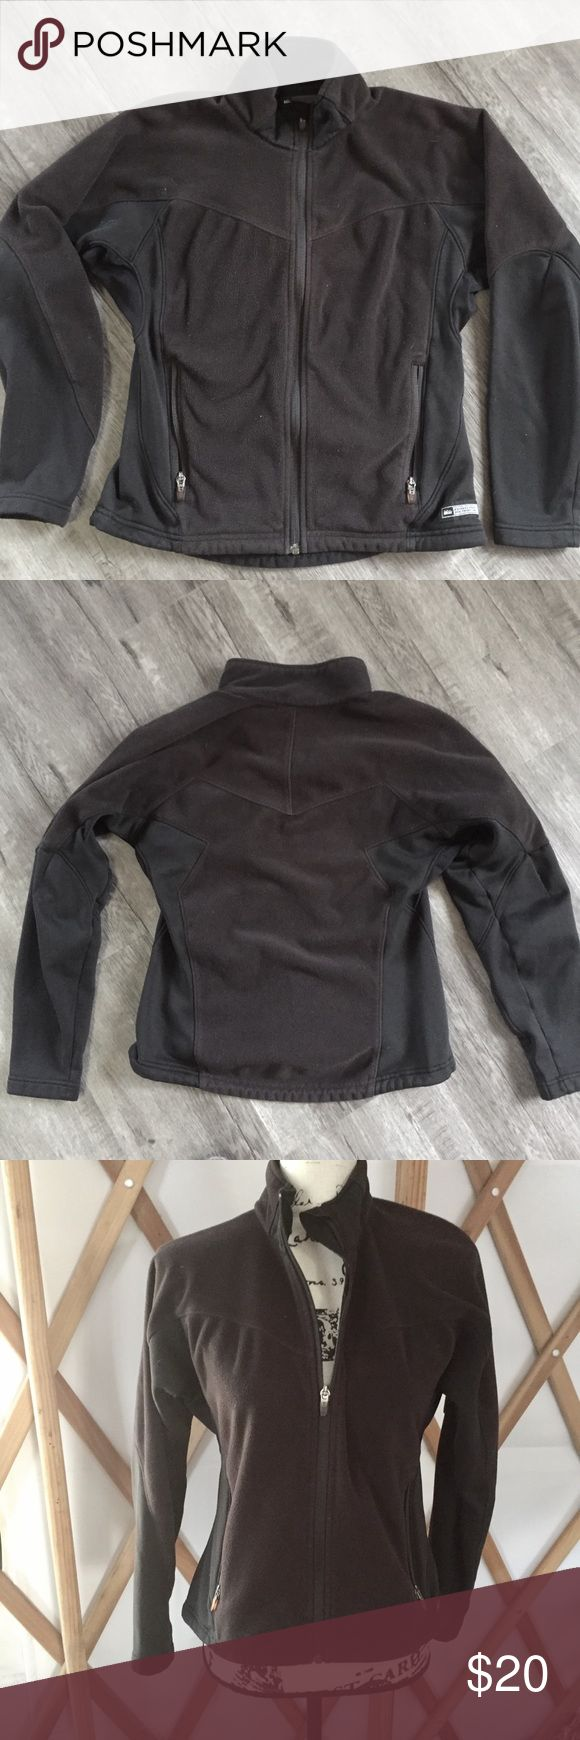 Black REI Fleece Jacket Very gently used black Women's Small REI polartech fleece jacket. The front and back of the body are fleece and the sides are soft stretch fabric for a flattering cut.  The armpits have slightly thinner fabric to help with temperature regulation.  Full zip with 2 zippered external pockets and two interior pockets.  The bottom hem also has a drawstring closure. Good used condition (4/5). REI Jackets & Coats